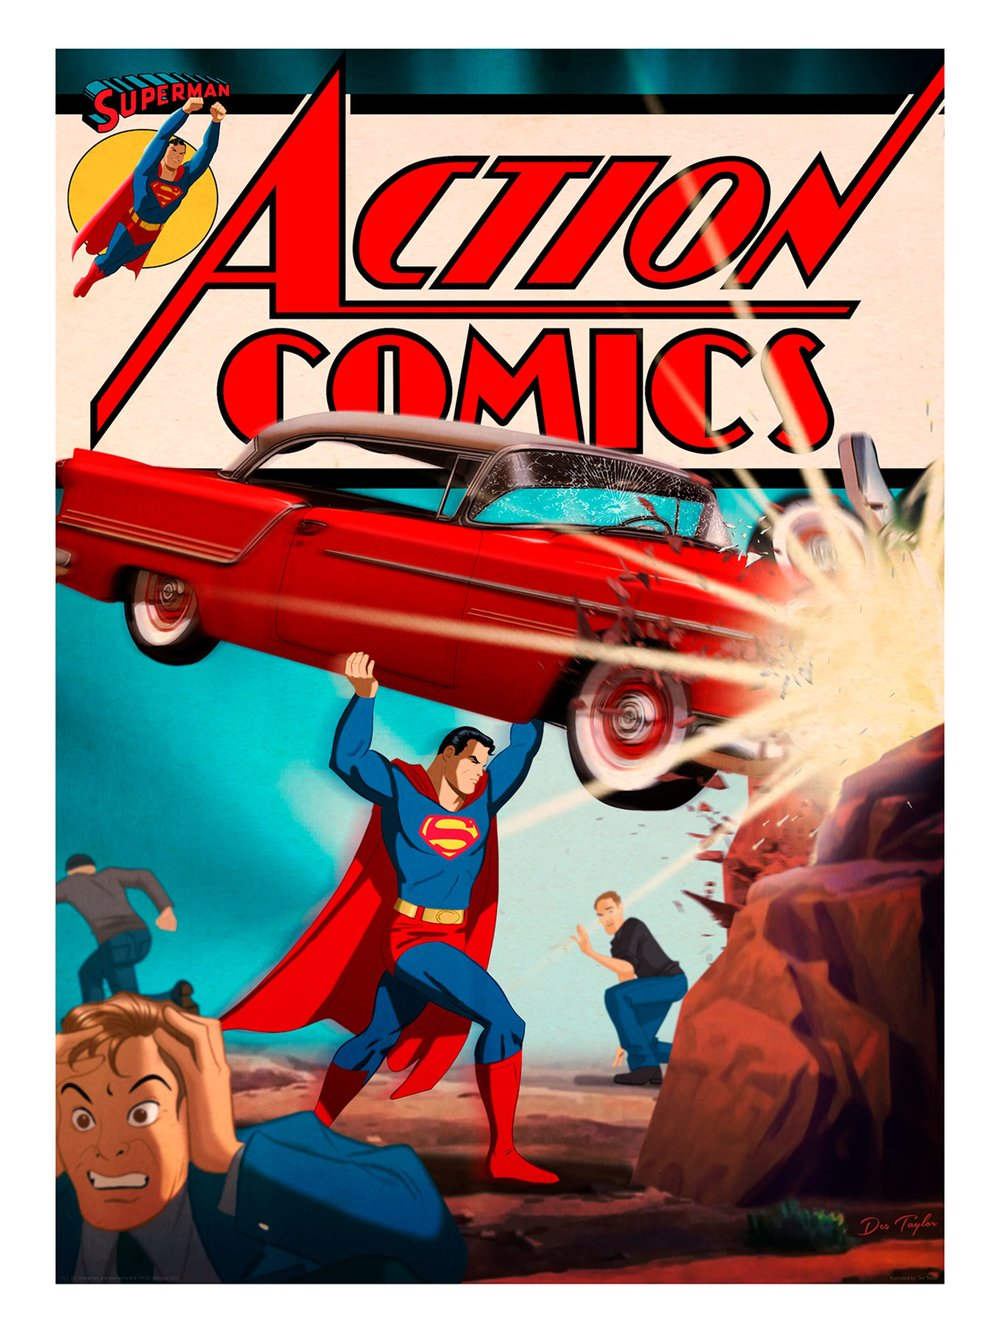 """Des Taylor """"Action Comics #1"""" giclee, 18 x 24 inches, numbered edition of 100, available for $45"""